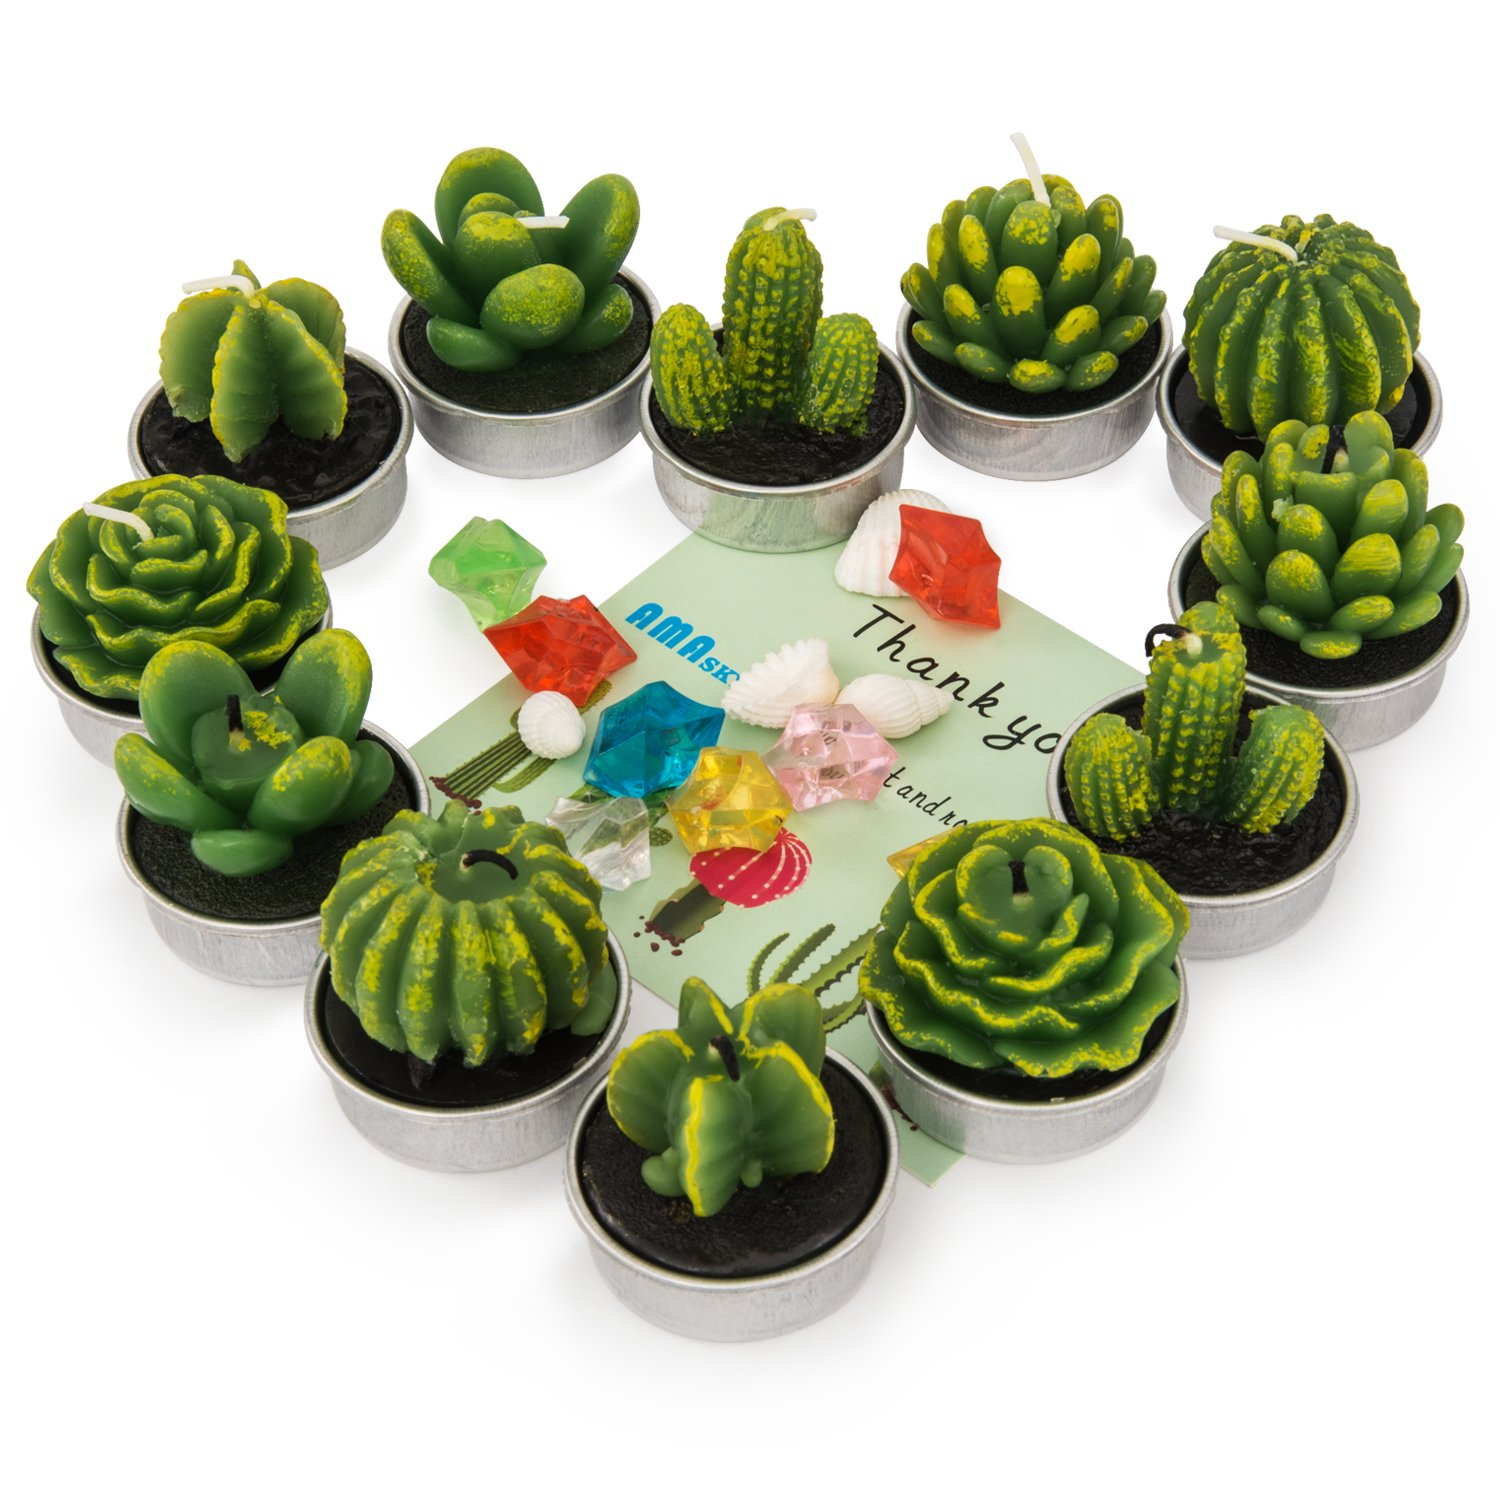 amasky Cactus Tealight Candles, Handmade Delicate Succulent Cactus Candles for Valentine's day Birthday Party Wedding Spa Home Decoration, 12 Pcs in Pack. (12)